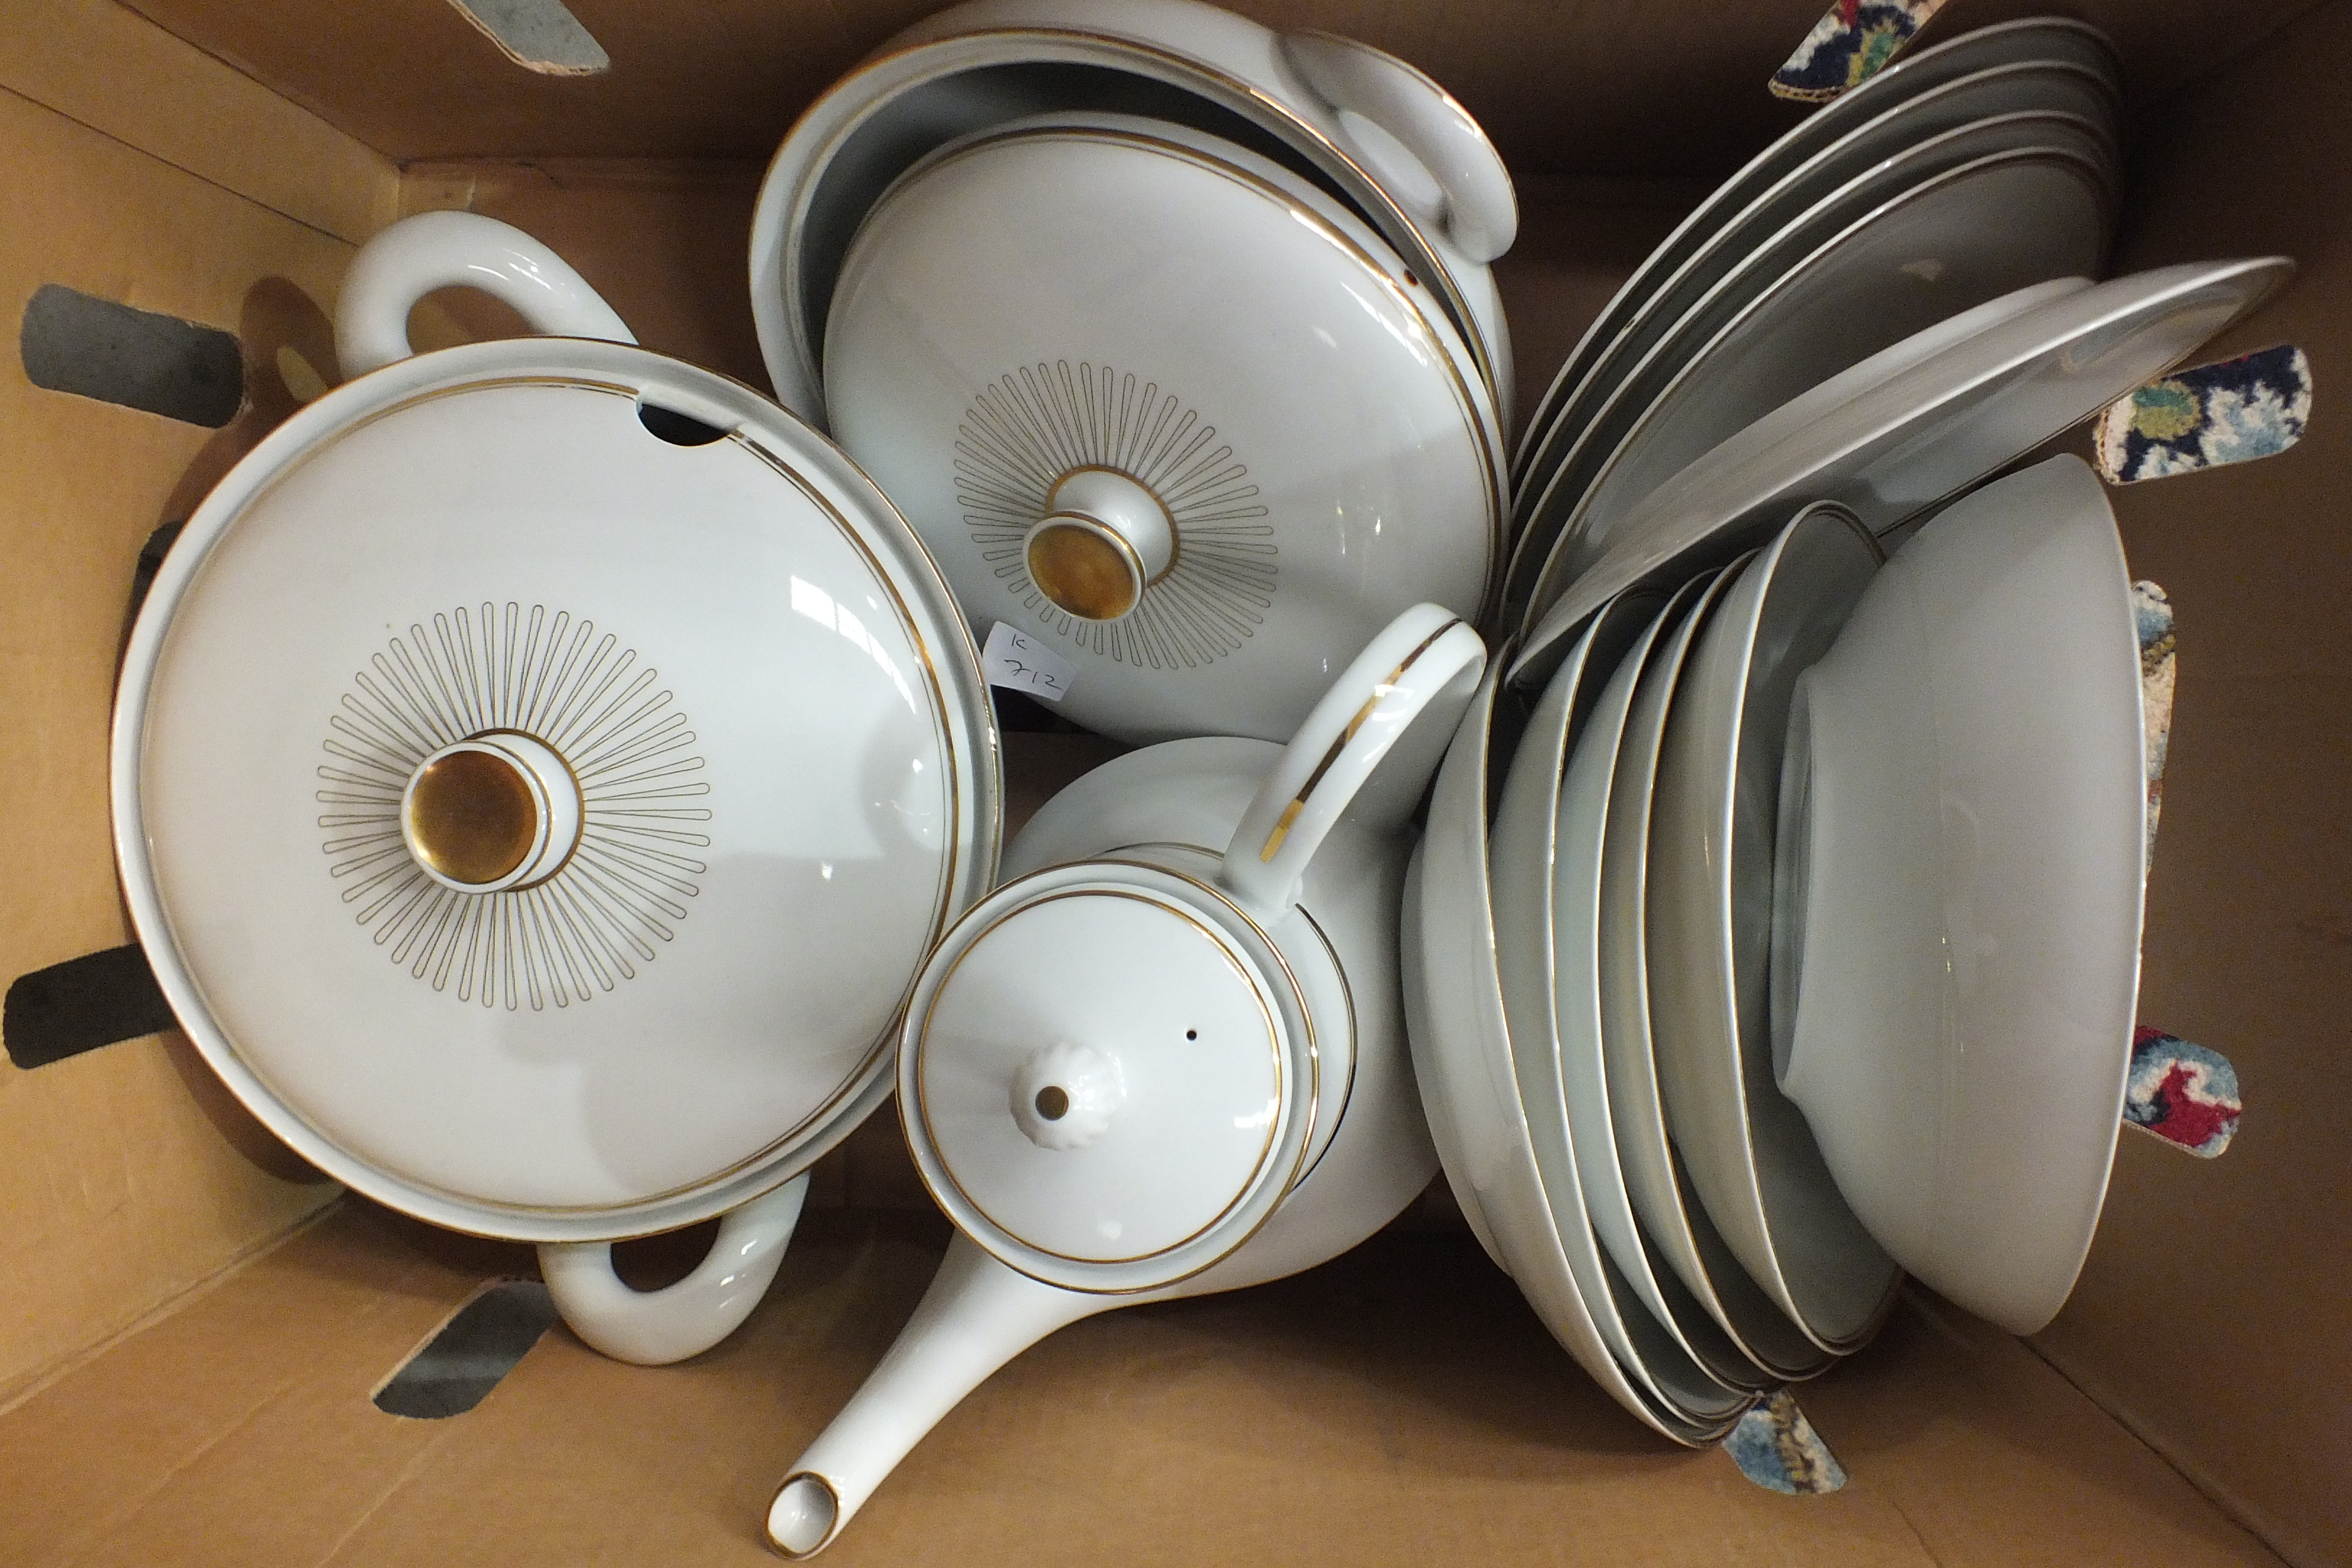 Lot 51 - A collection of Royal Doulton 'Harlow' pattern dinnerware, approximately 37 pieces, a collection